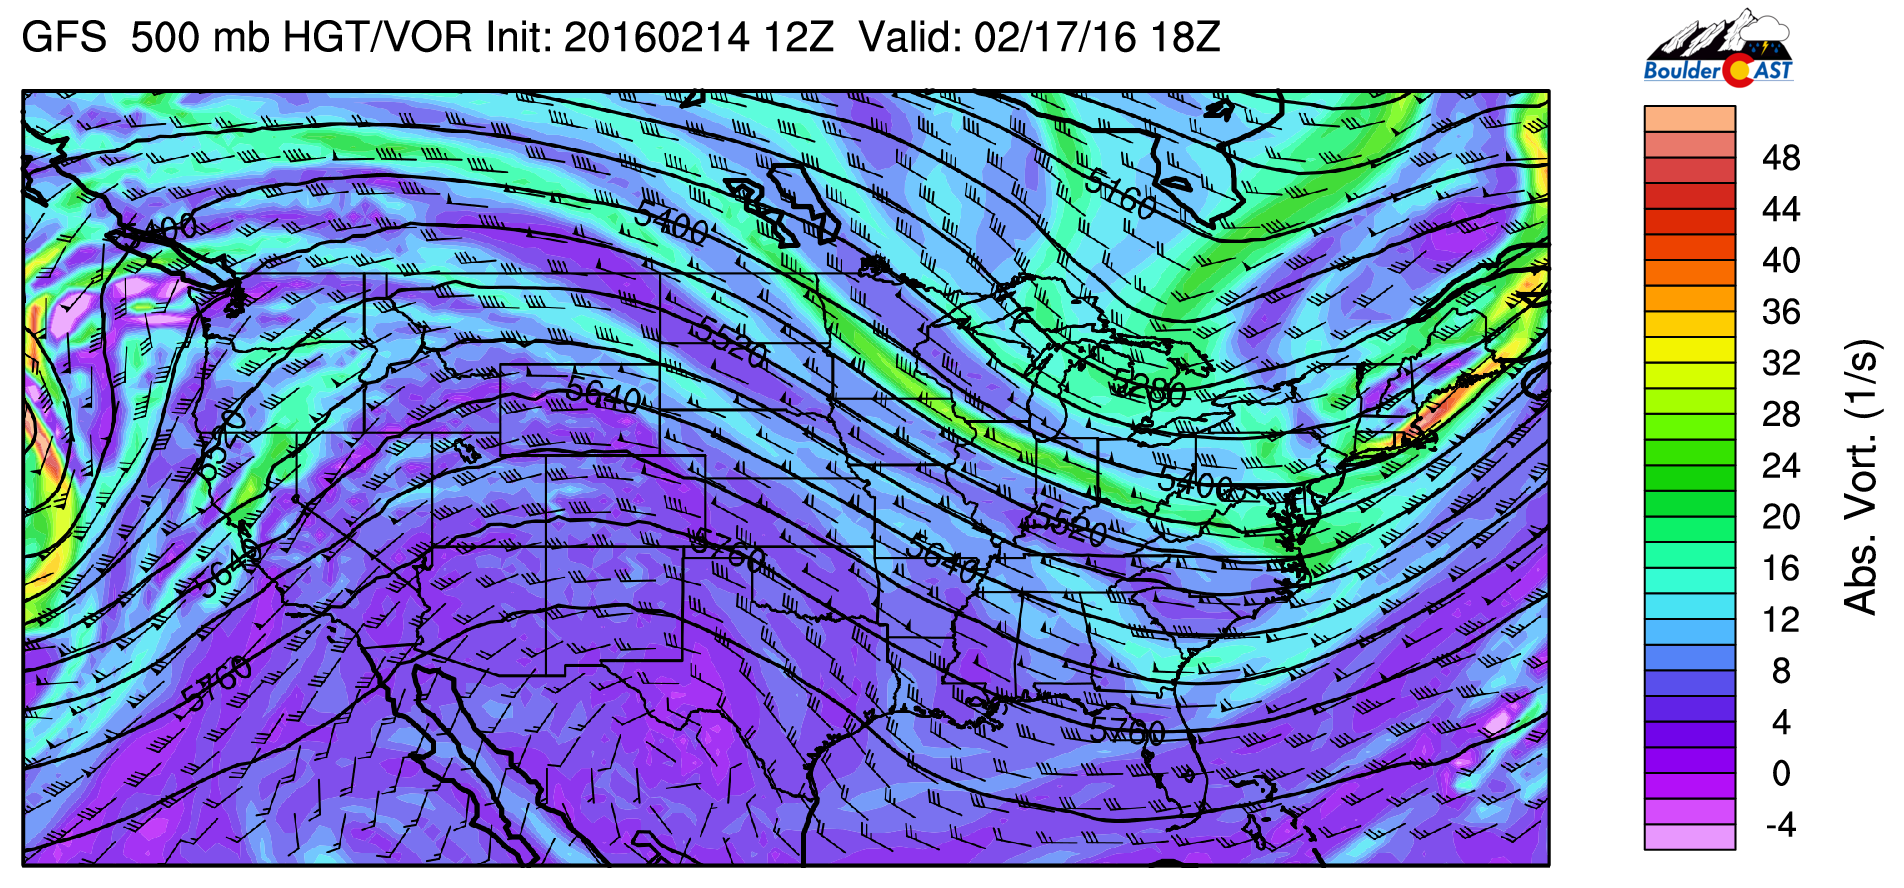 GFS 500 mb absolute vorticity and height pattern for Wednesday